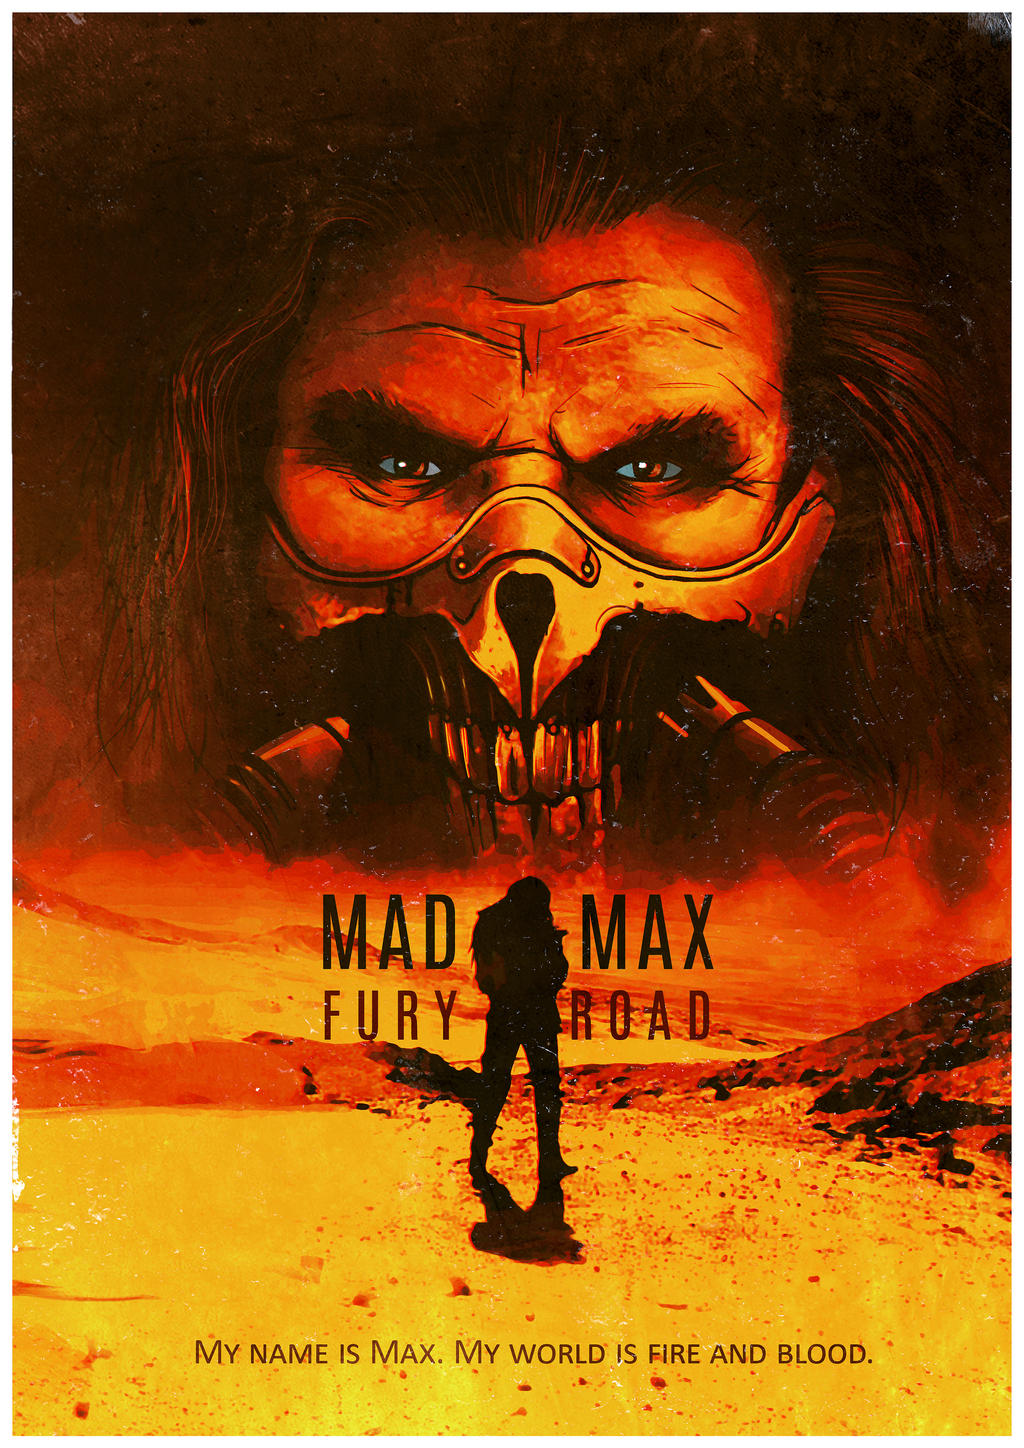 Super Mad Max Fury Road poster by tramvaev on DeviantArt WE81